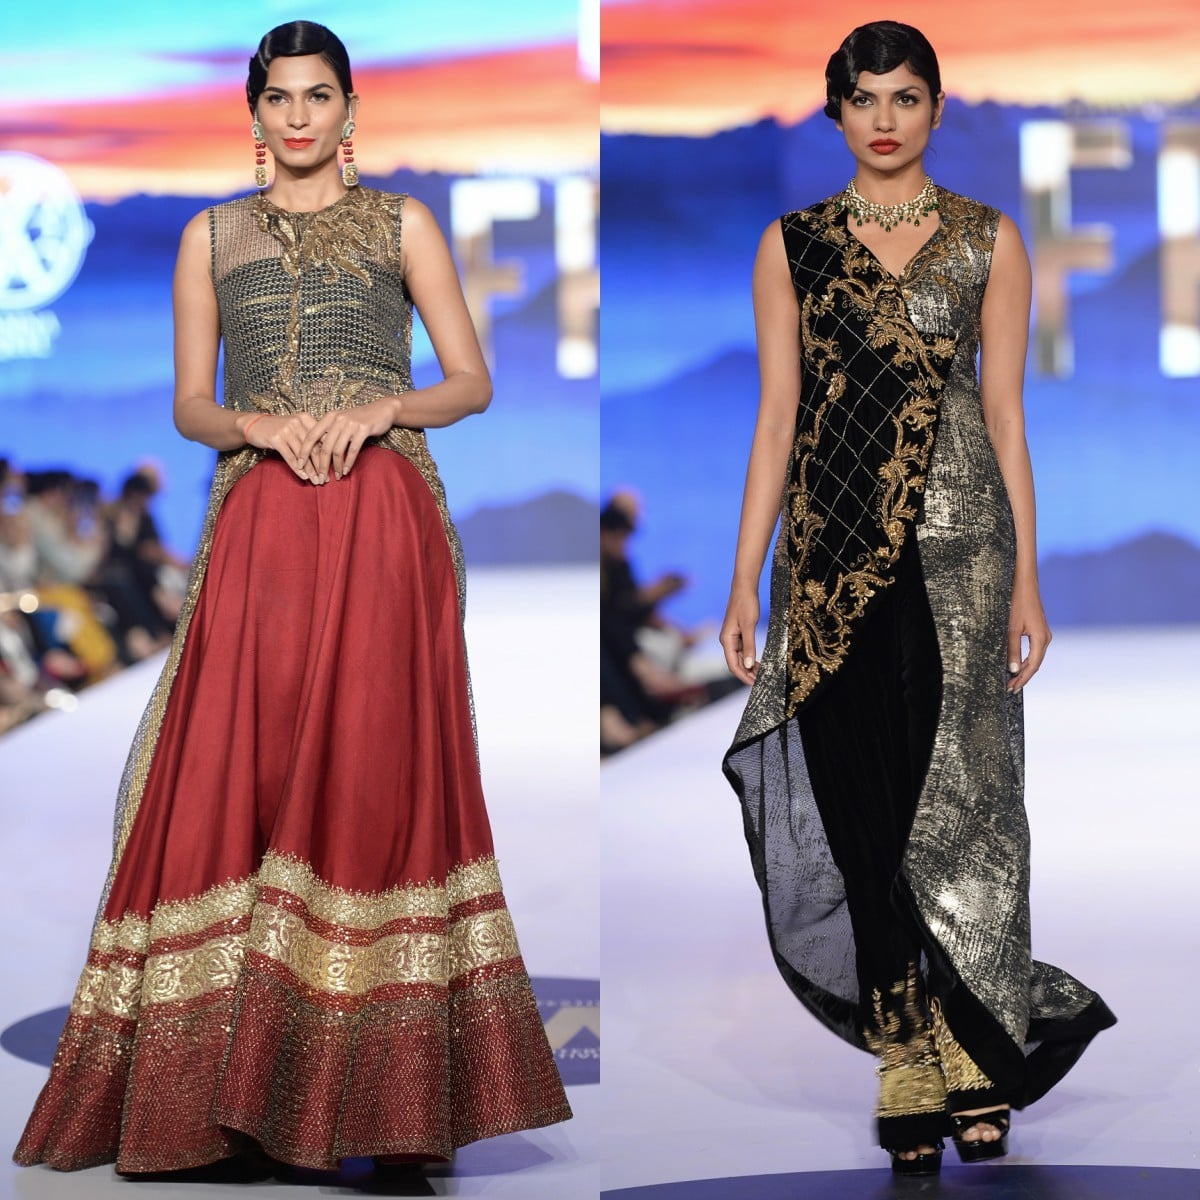 Better fitting and finer workmanship will elevate Aamna Aqeel's designs